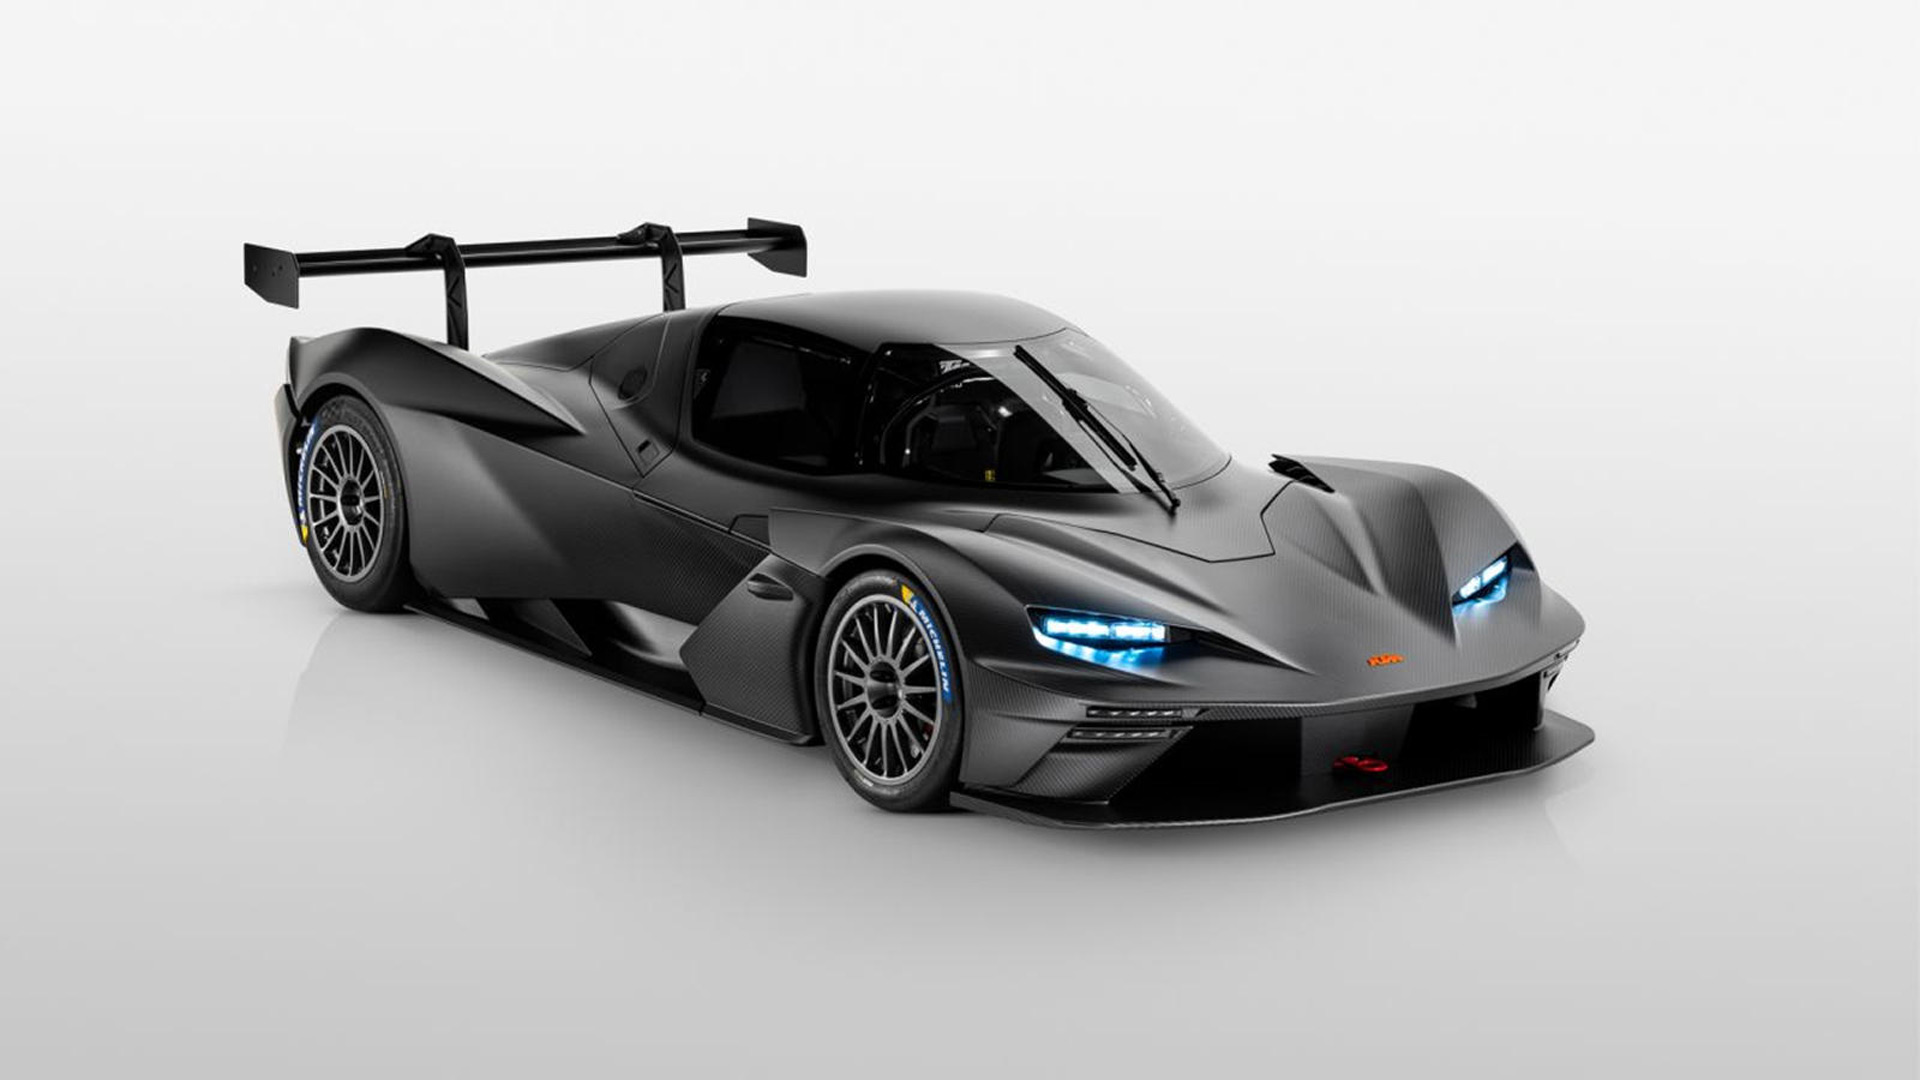 2021-ktm-x-bow-gtx-race-car_100765299_h